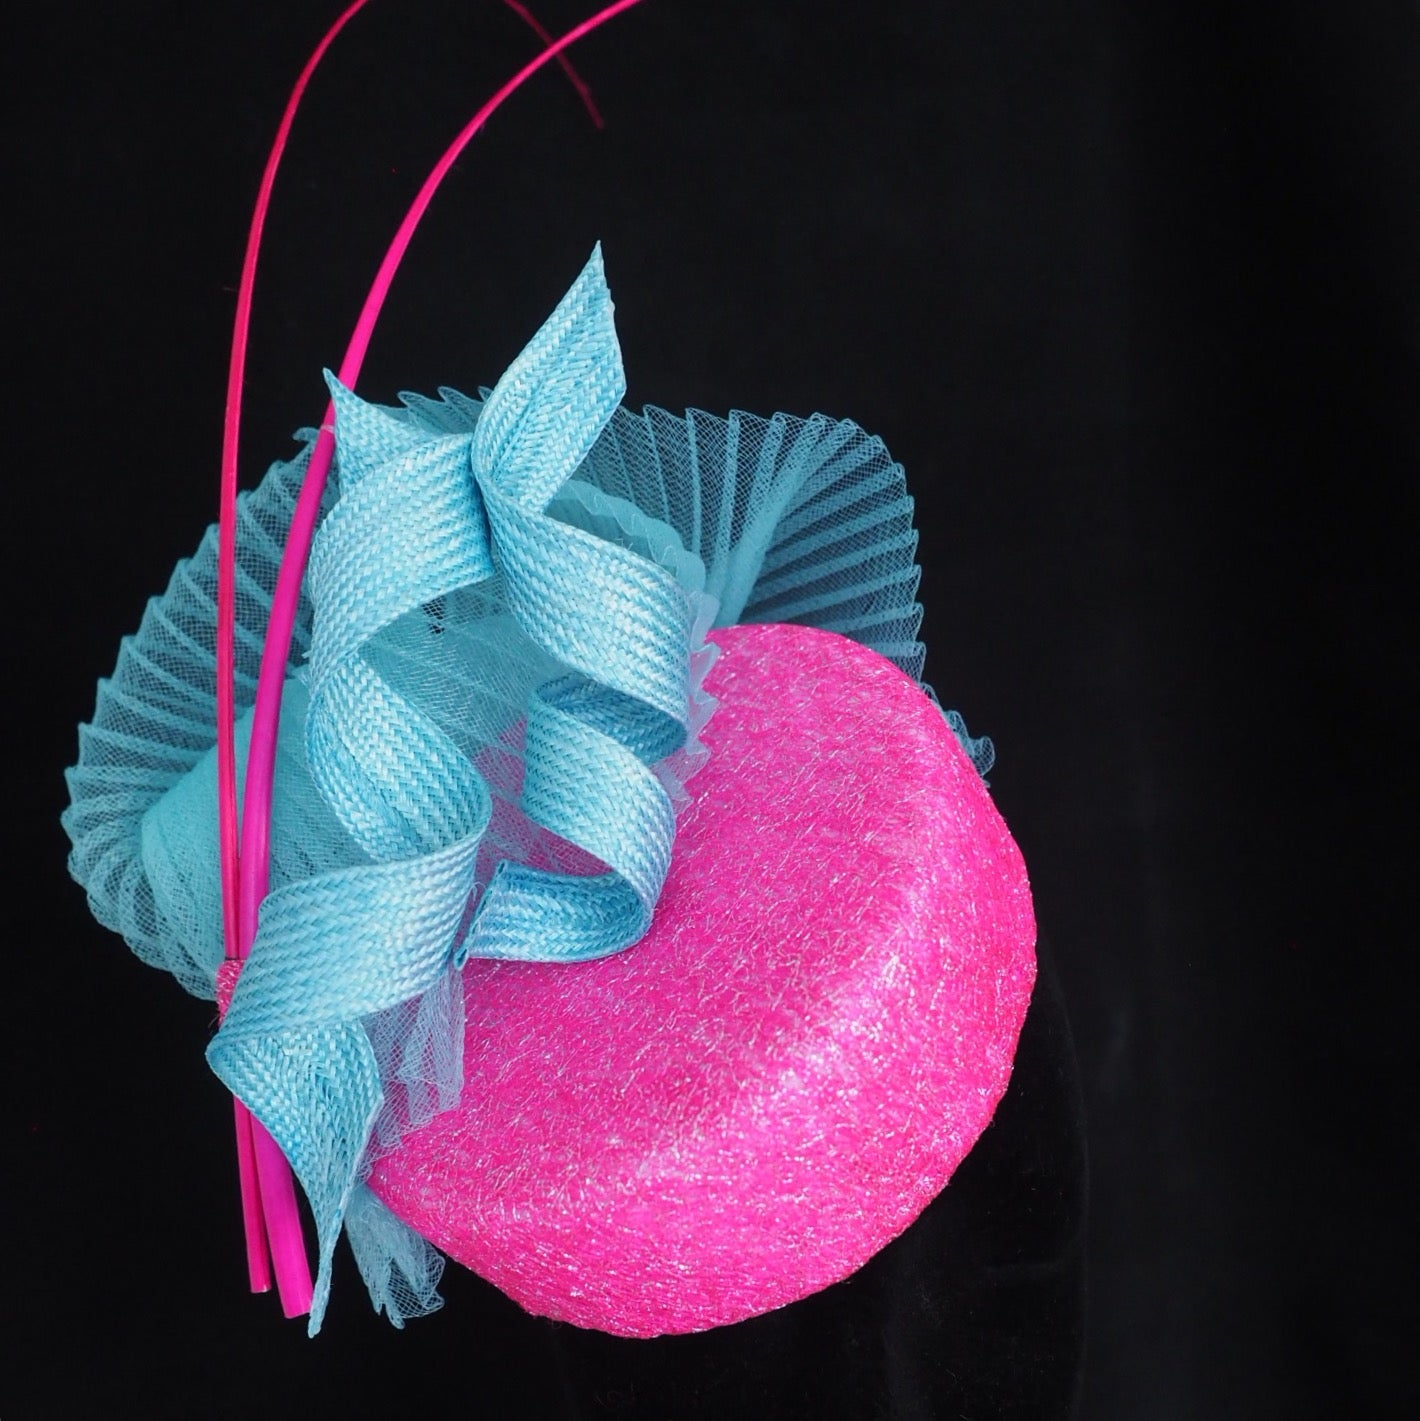 Little Pink Pill - Sassy pillbox hat handcrafted - Couture millinery - NOELEEN MILLINERY HONG KONG